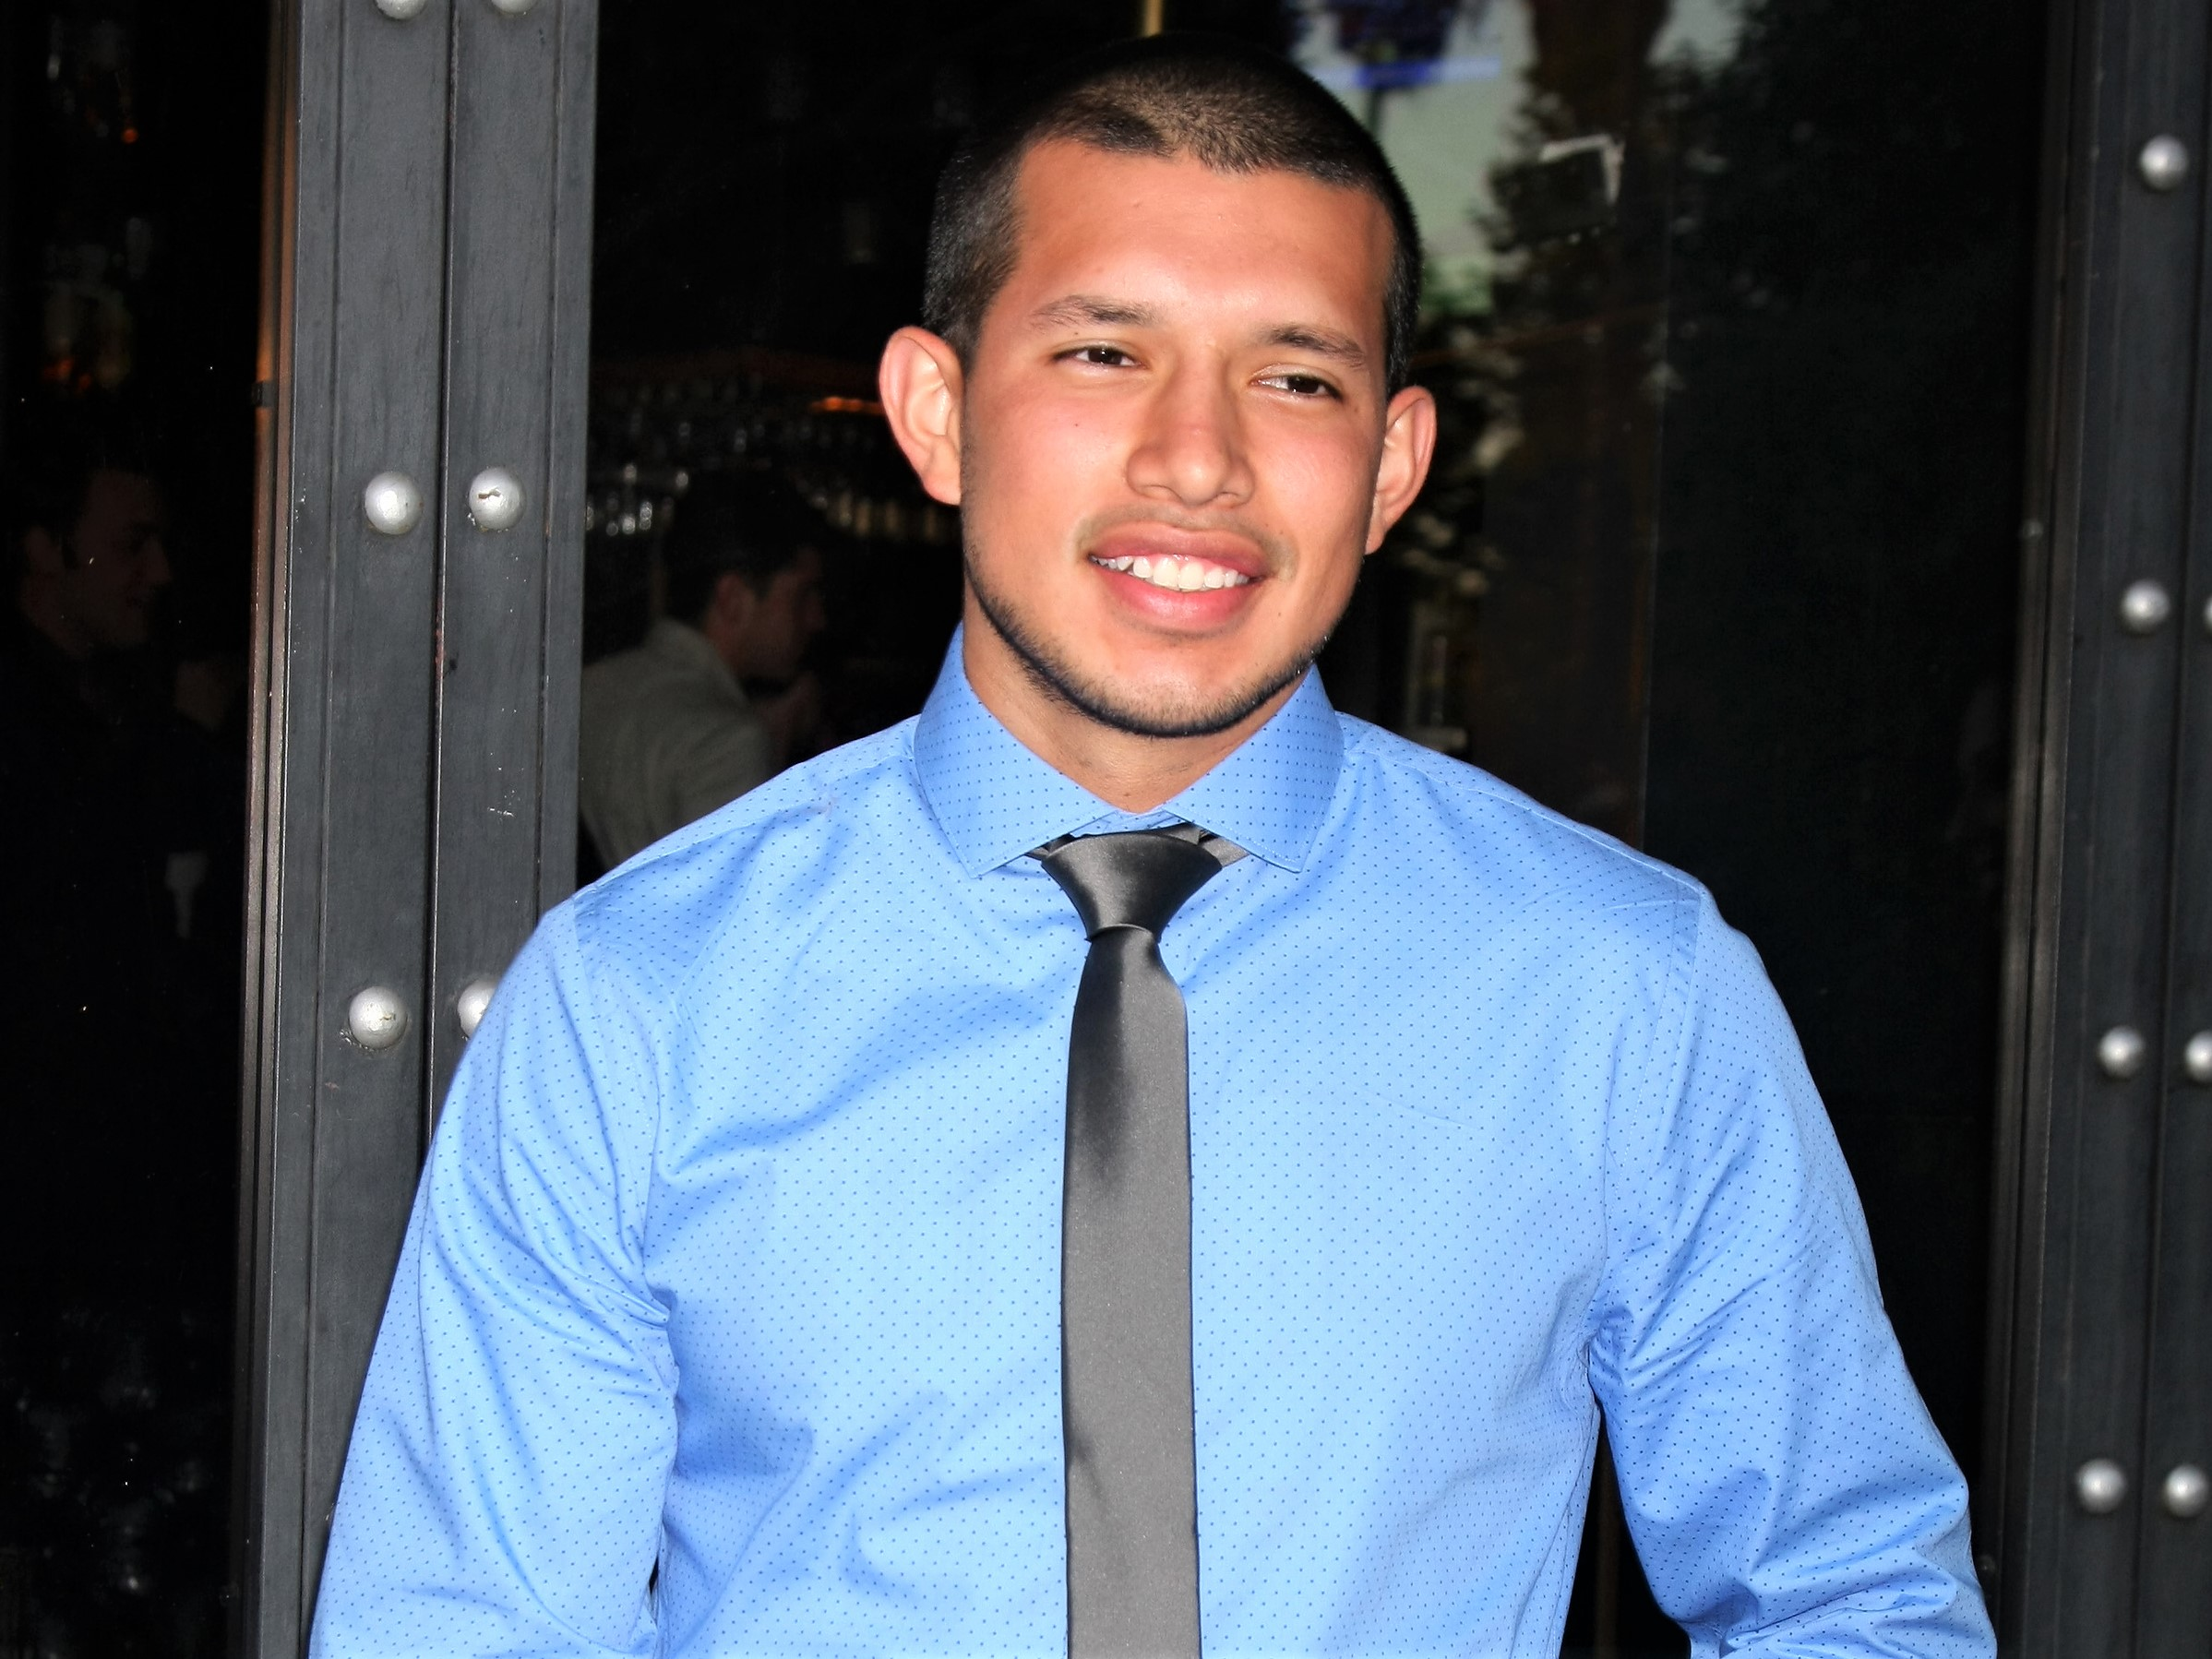 Teen Mom 2's Javi Marroquin Reveals He's Expecting a Baby Boy with Girlfriend Lauren Comeau